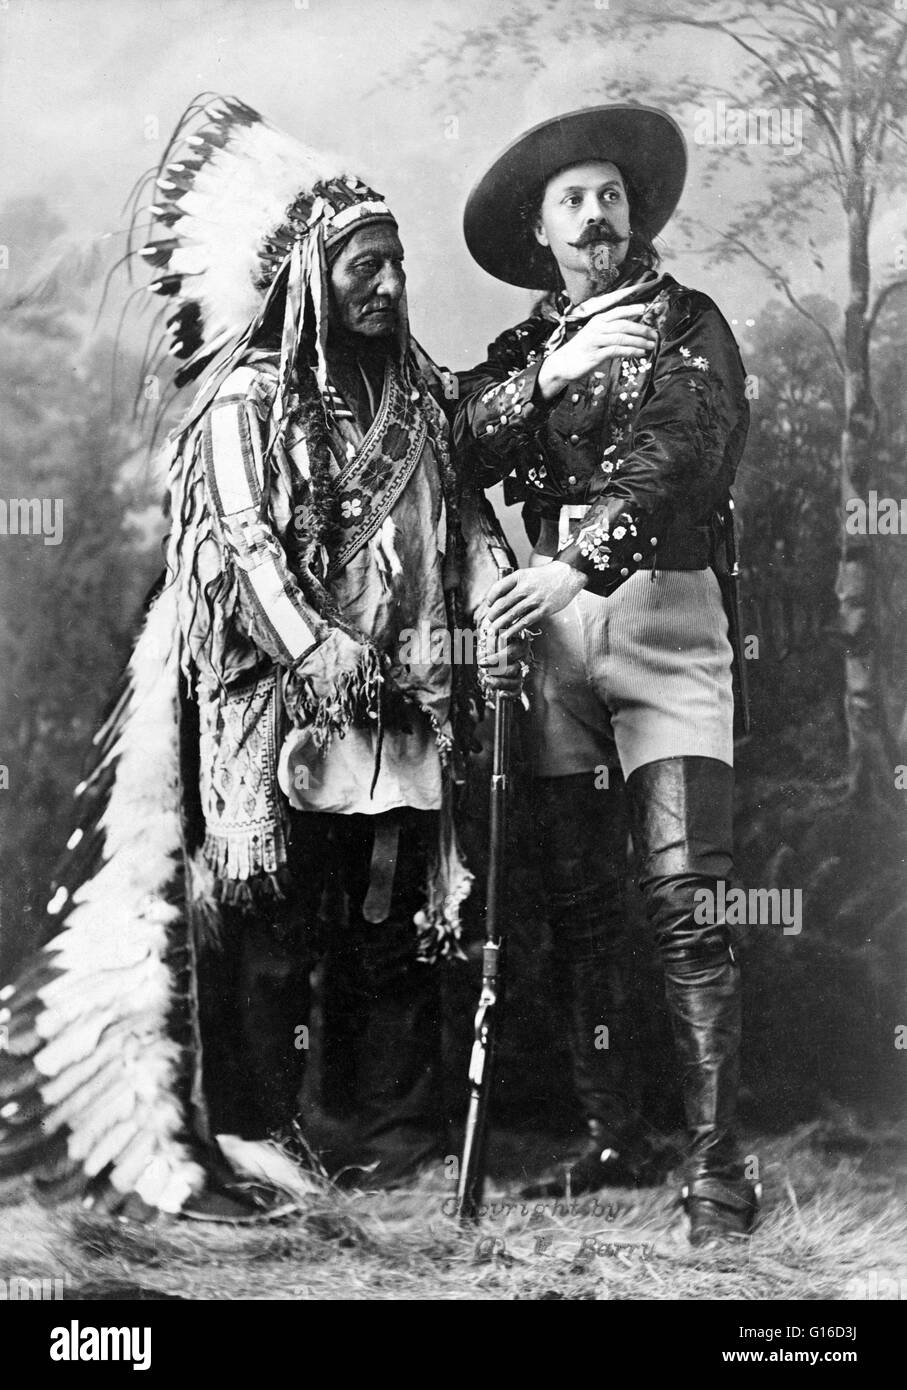 Sitting Bull and Buffalo Bill, taken by William Notman studios, Montreal, Quebec, Canada, during Buffalo Bill's - Stock Image